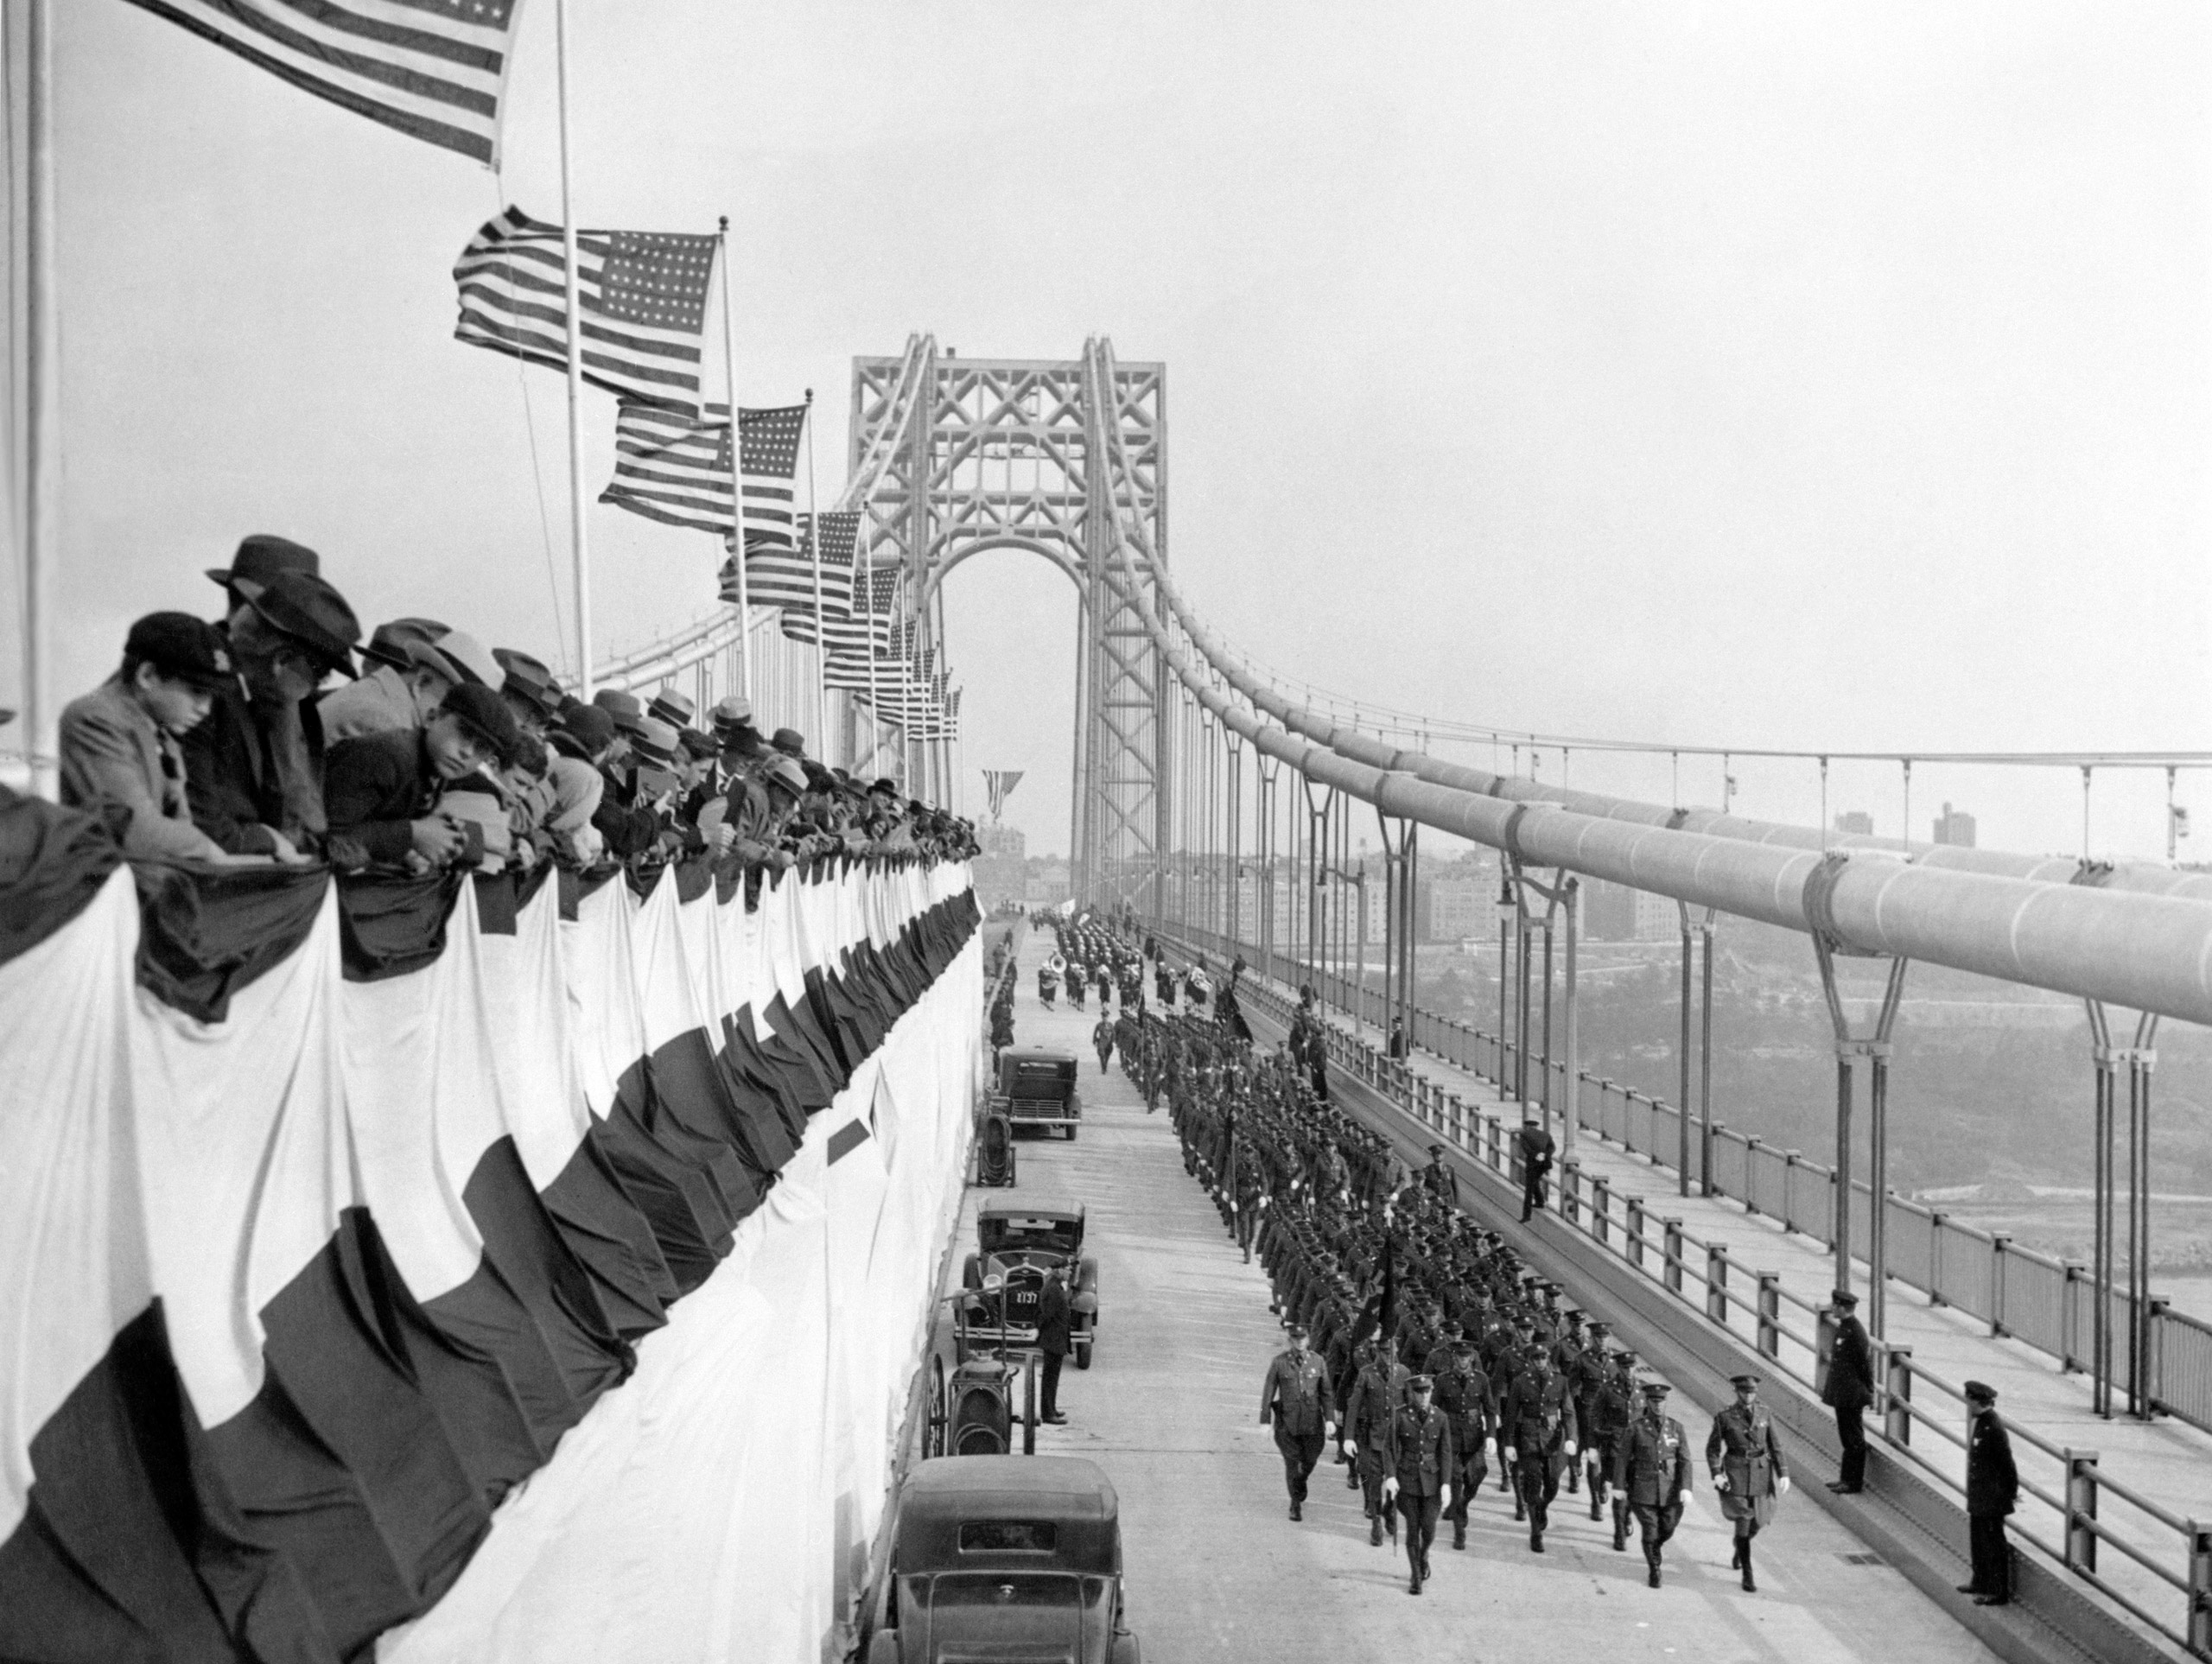 Police officers march beneath American flags during the opening ceremonies for the George Washington Bridge in New York City on Oct. 24, 1931.